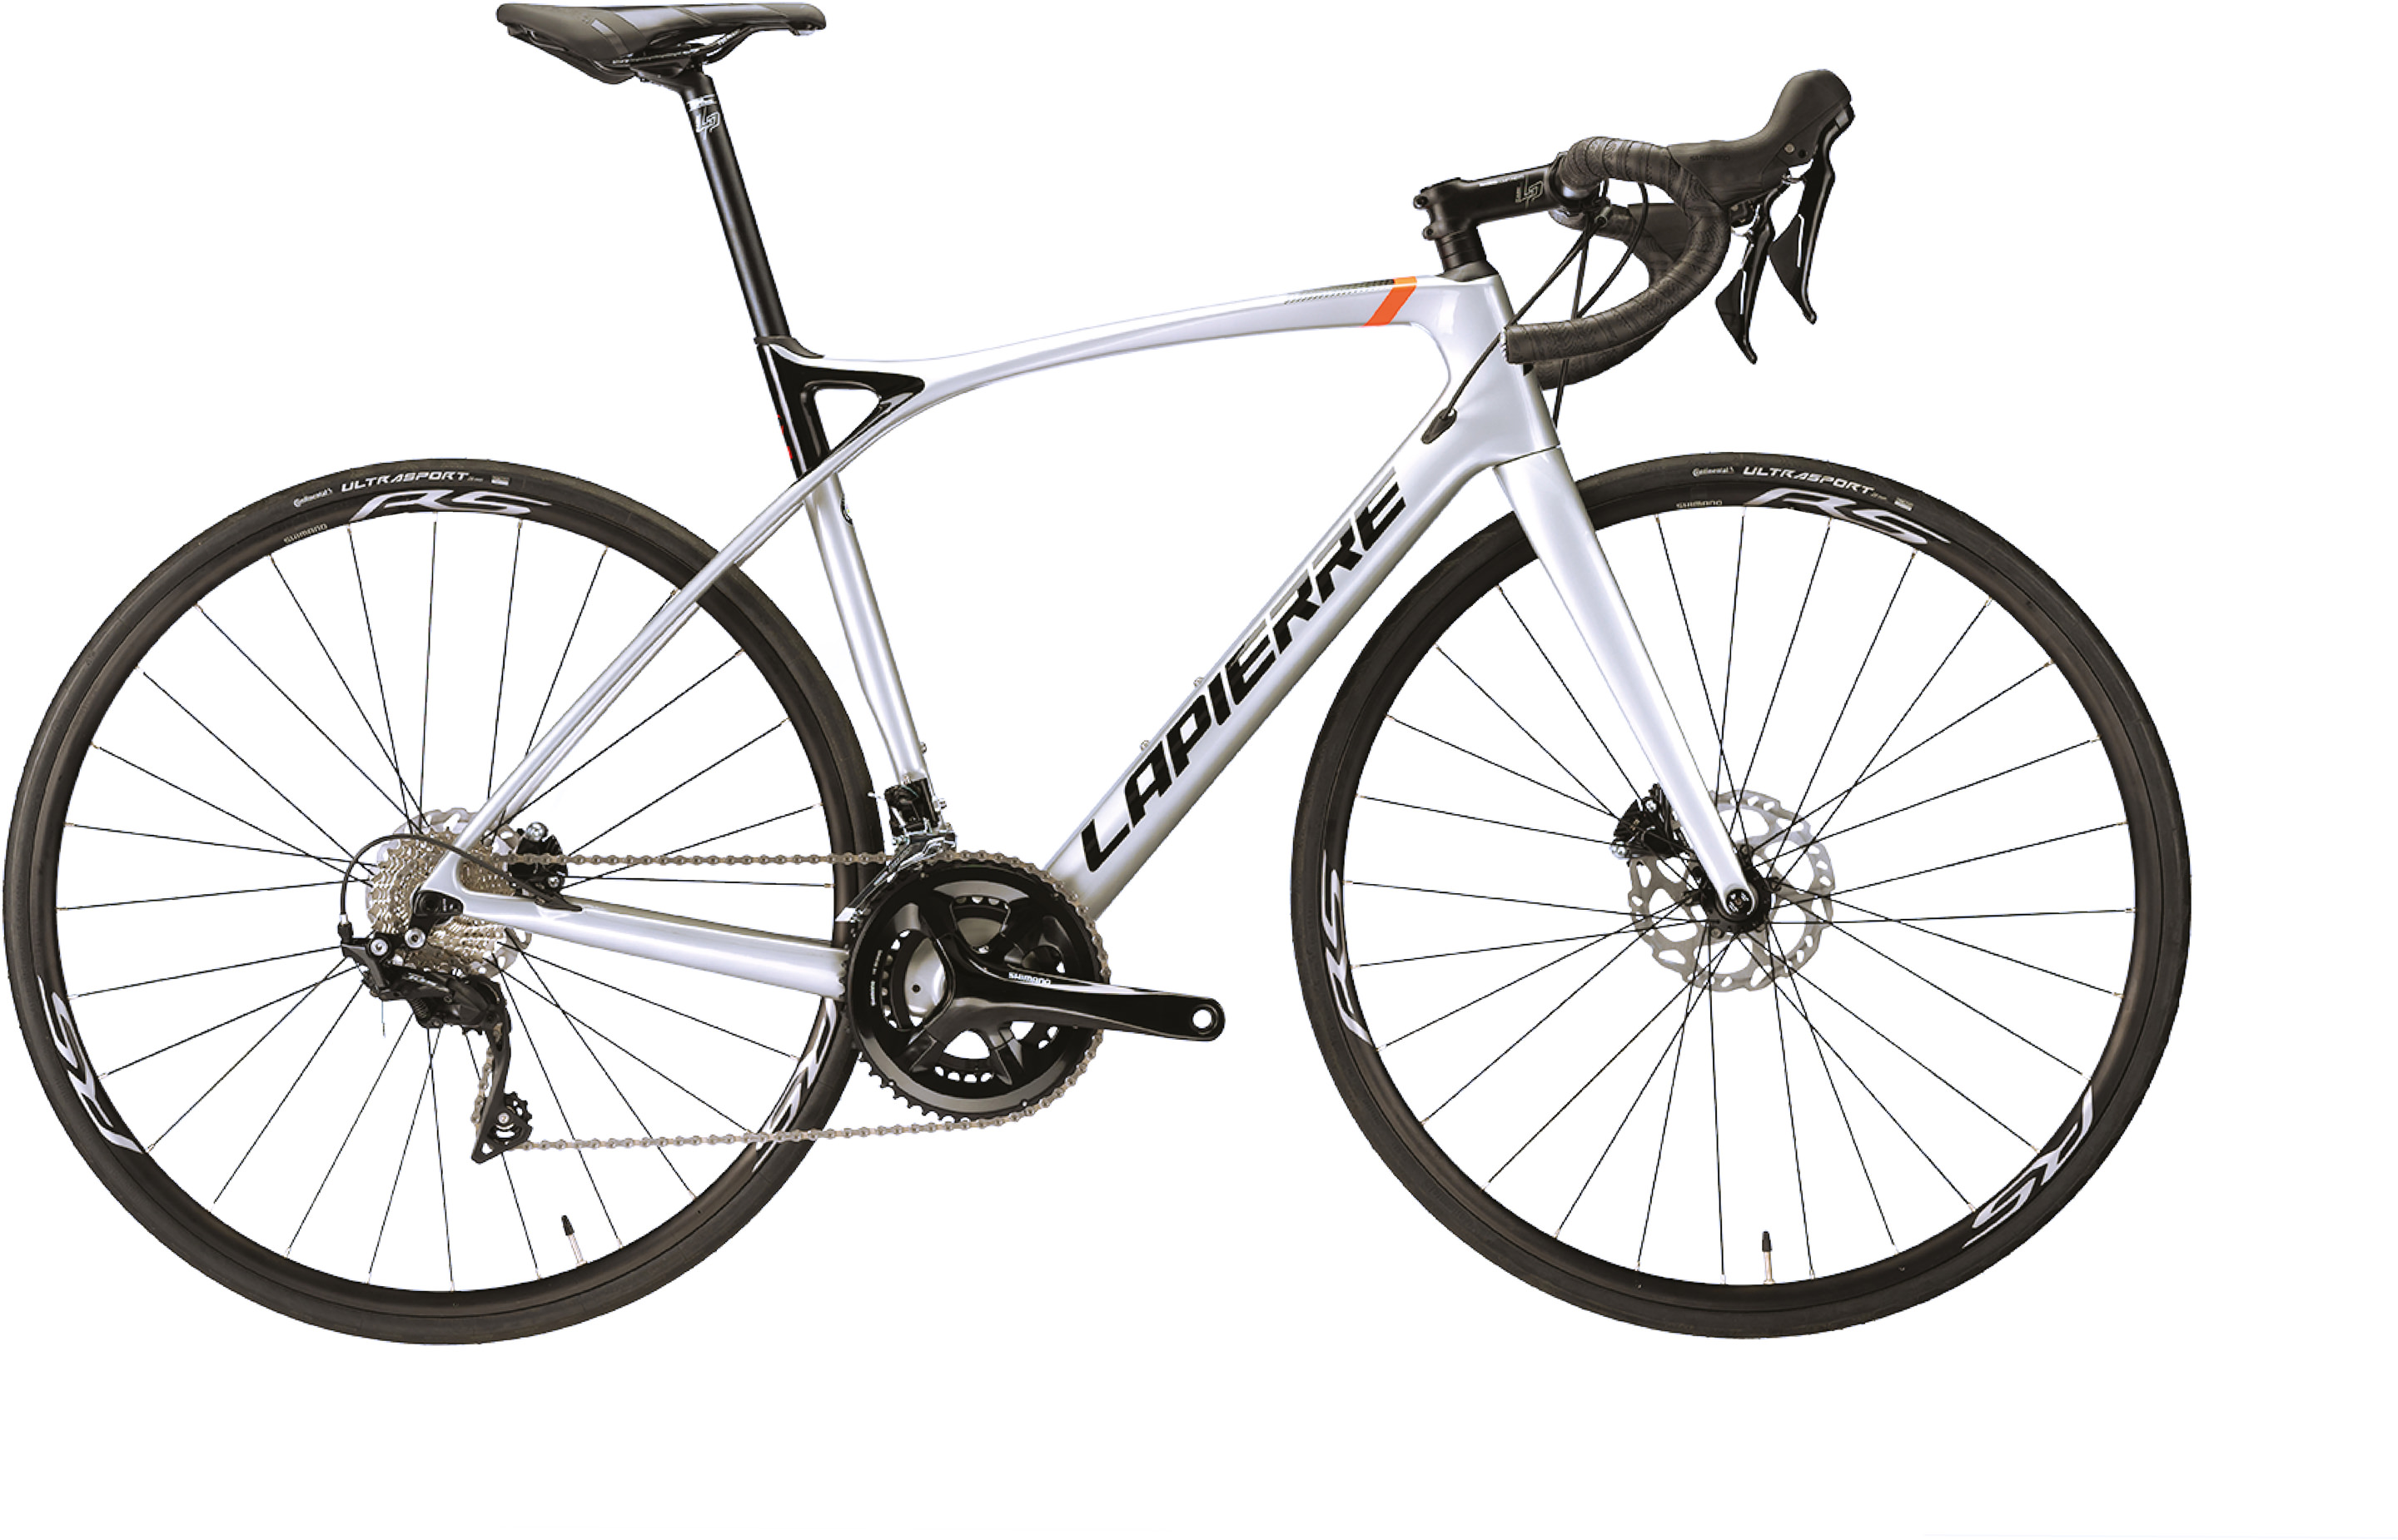 XELIUS SL 500 DISC | Culture Vélo